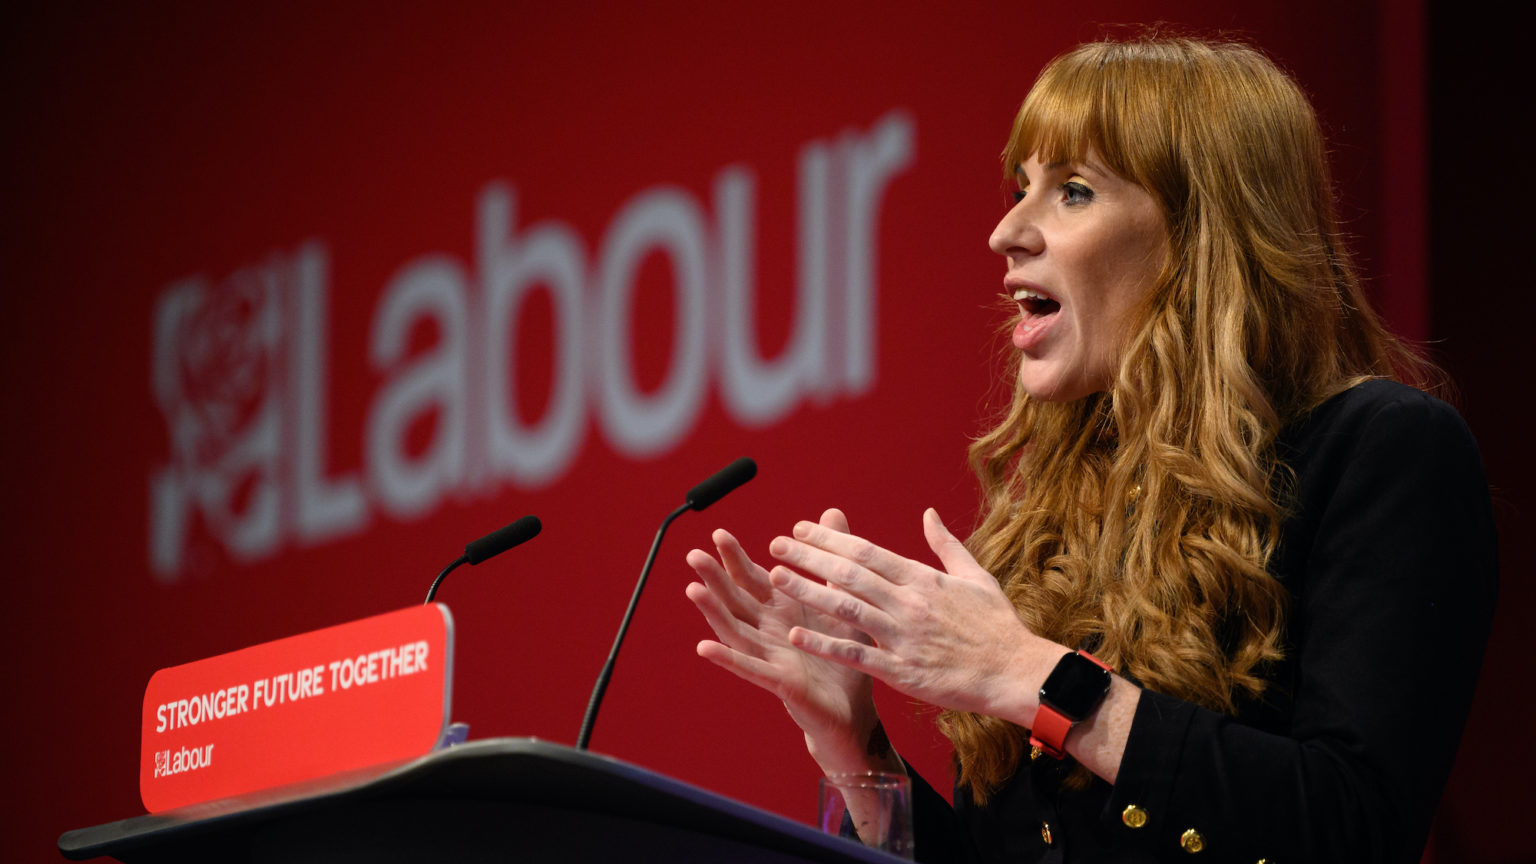 Labour's insult to voters